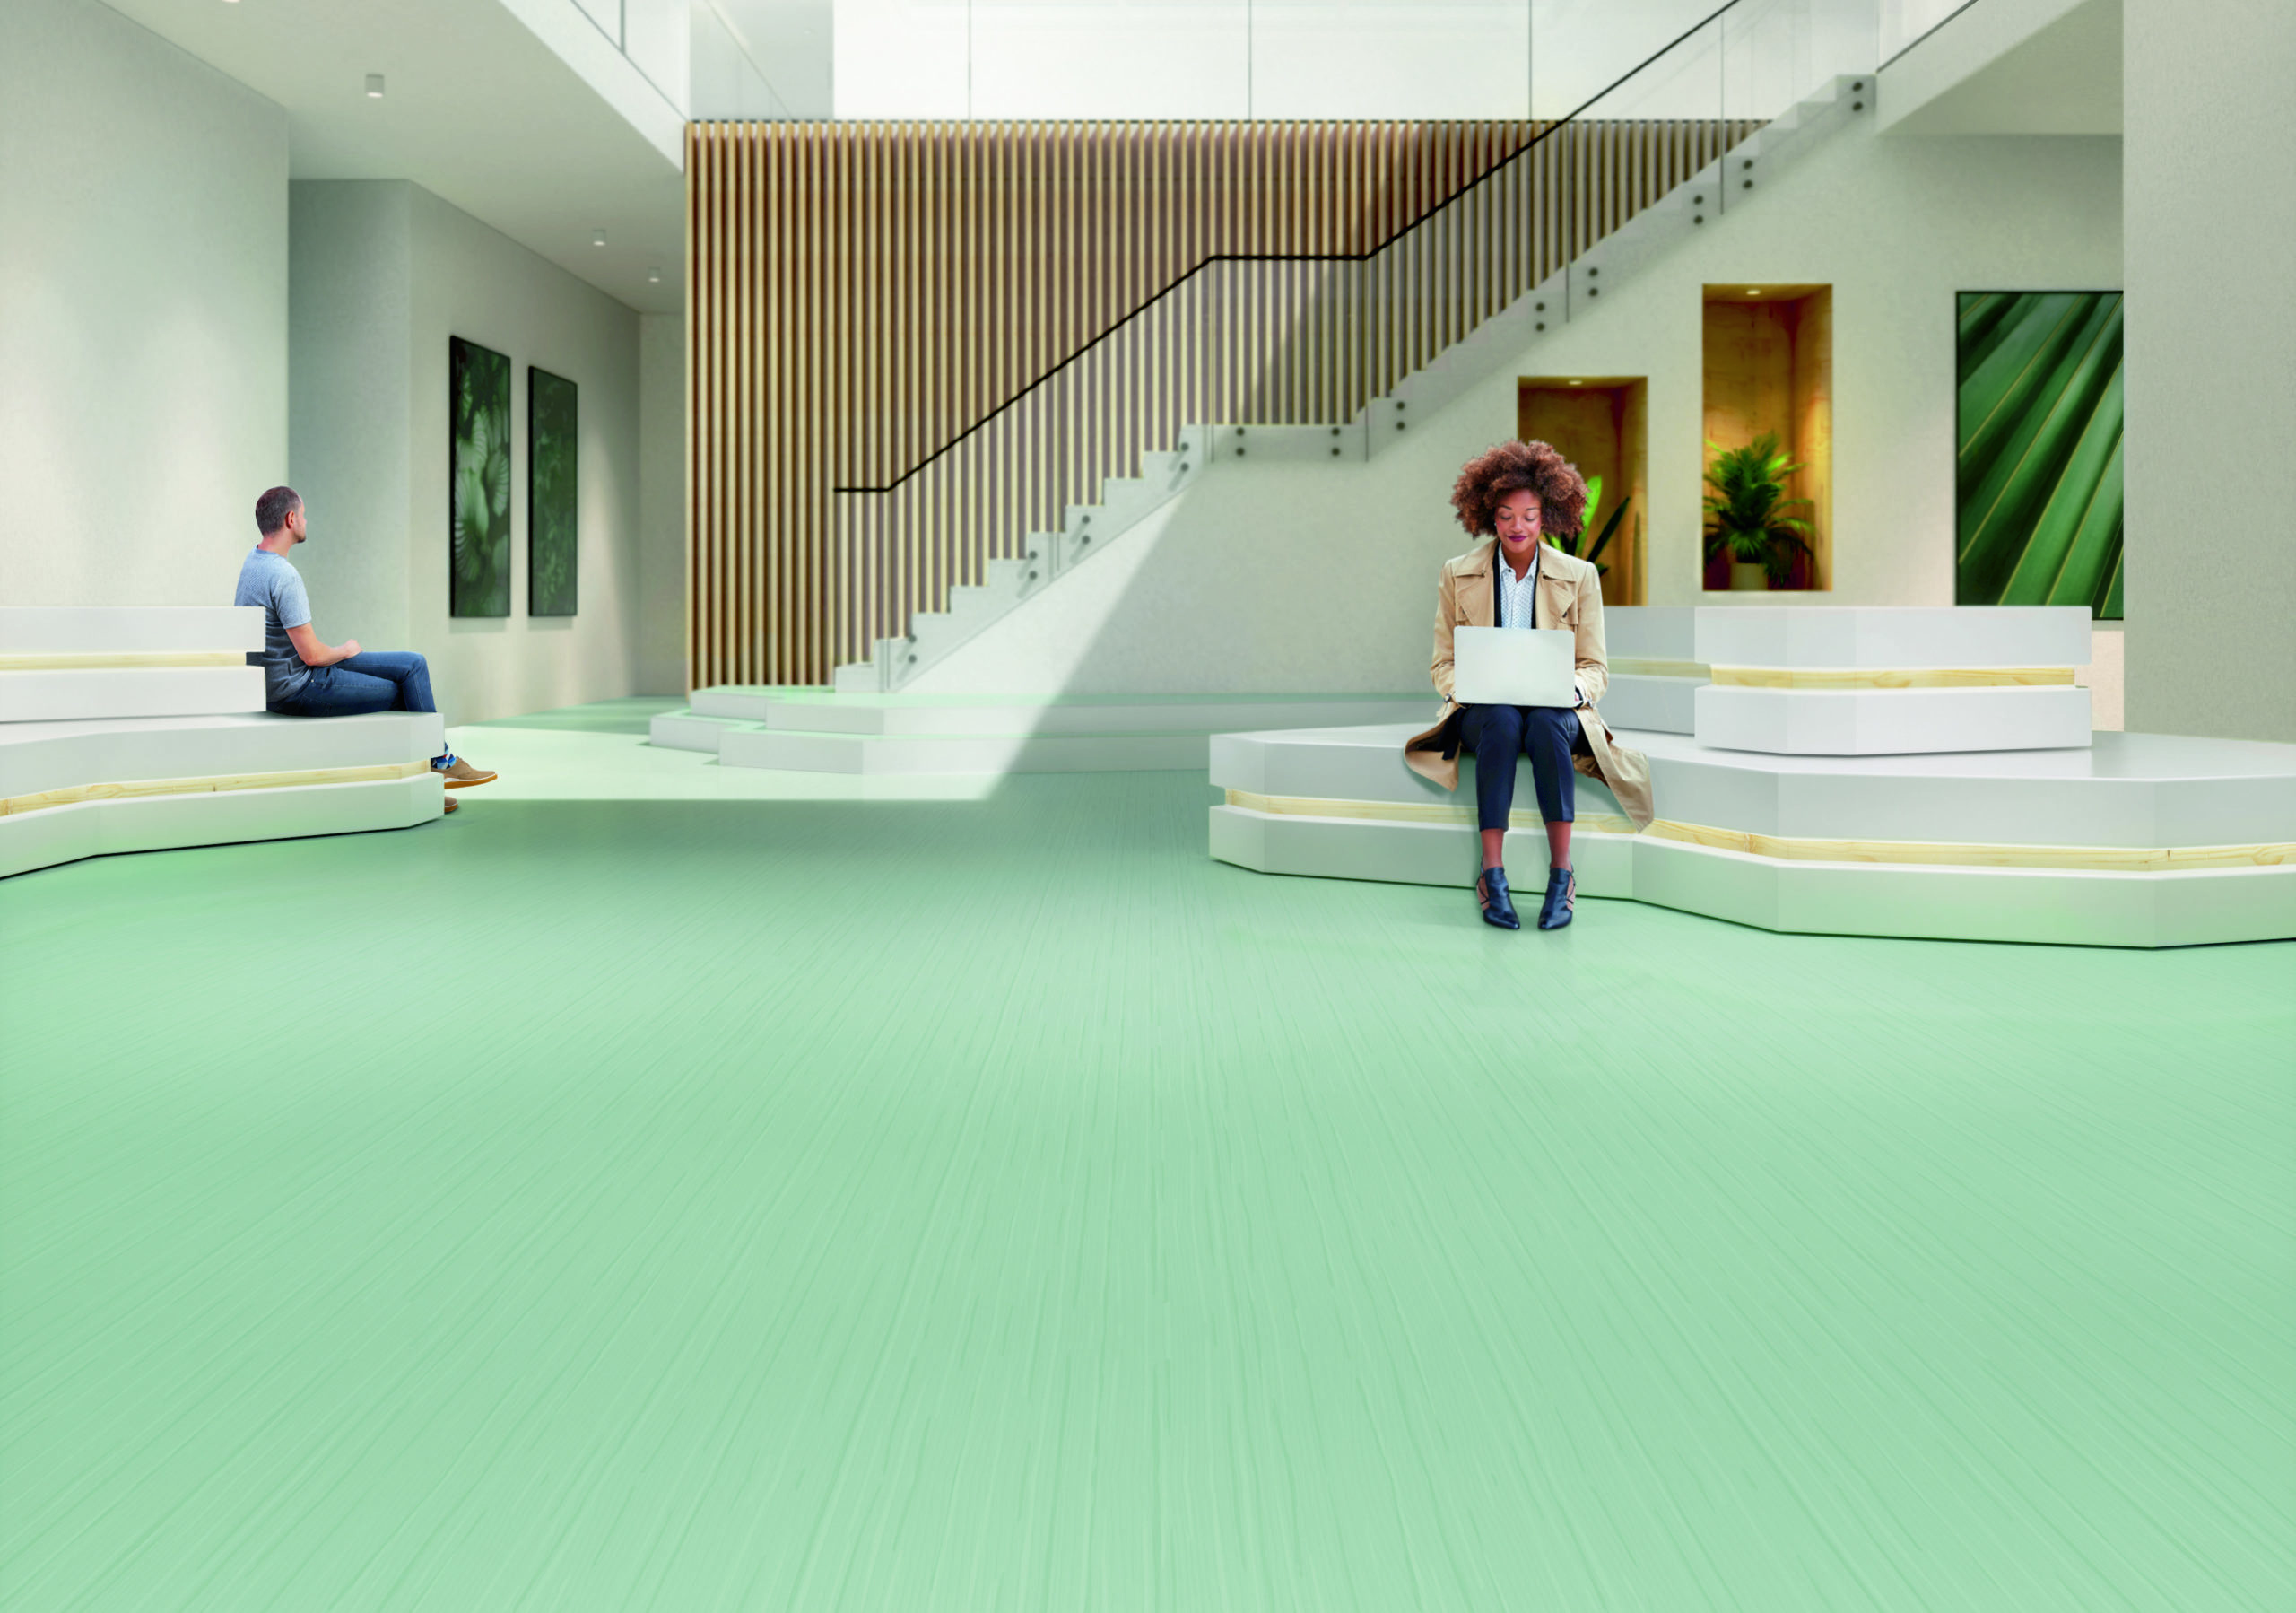 LINEAR DESIGN OF NEW NORA RUBBER FLOORING ADDS ATMOSPHERE AND SPACE